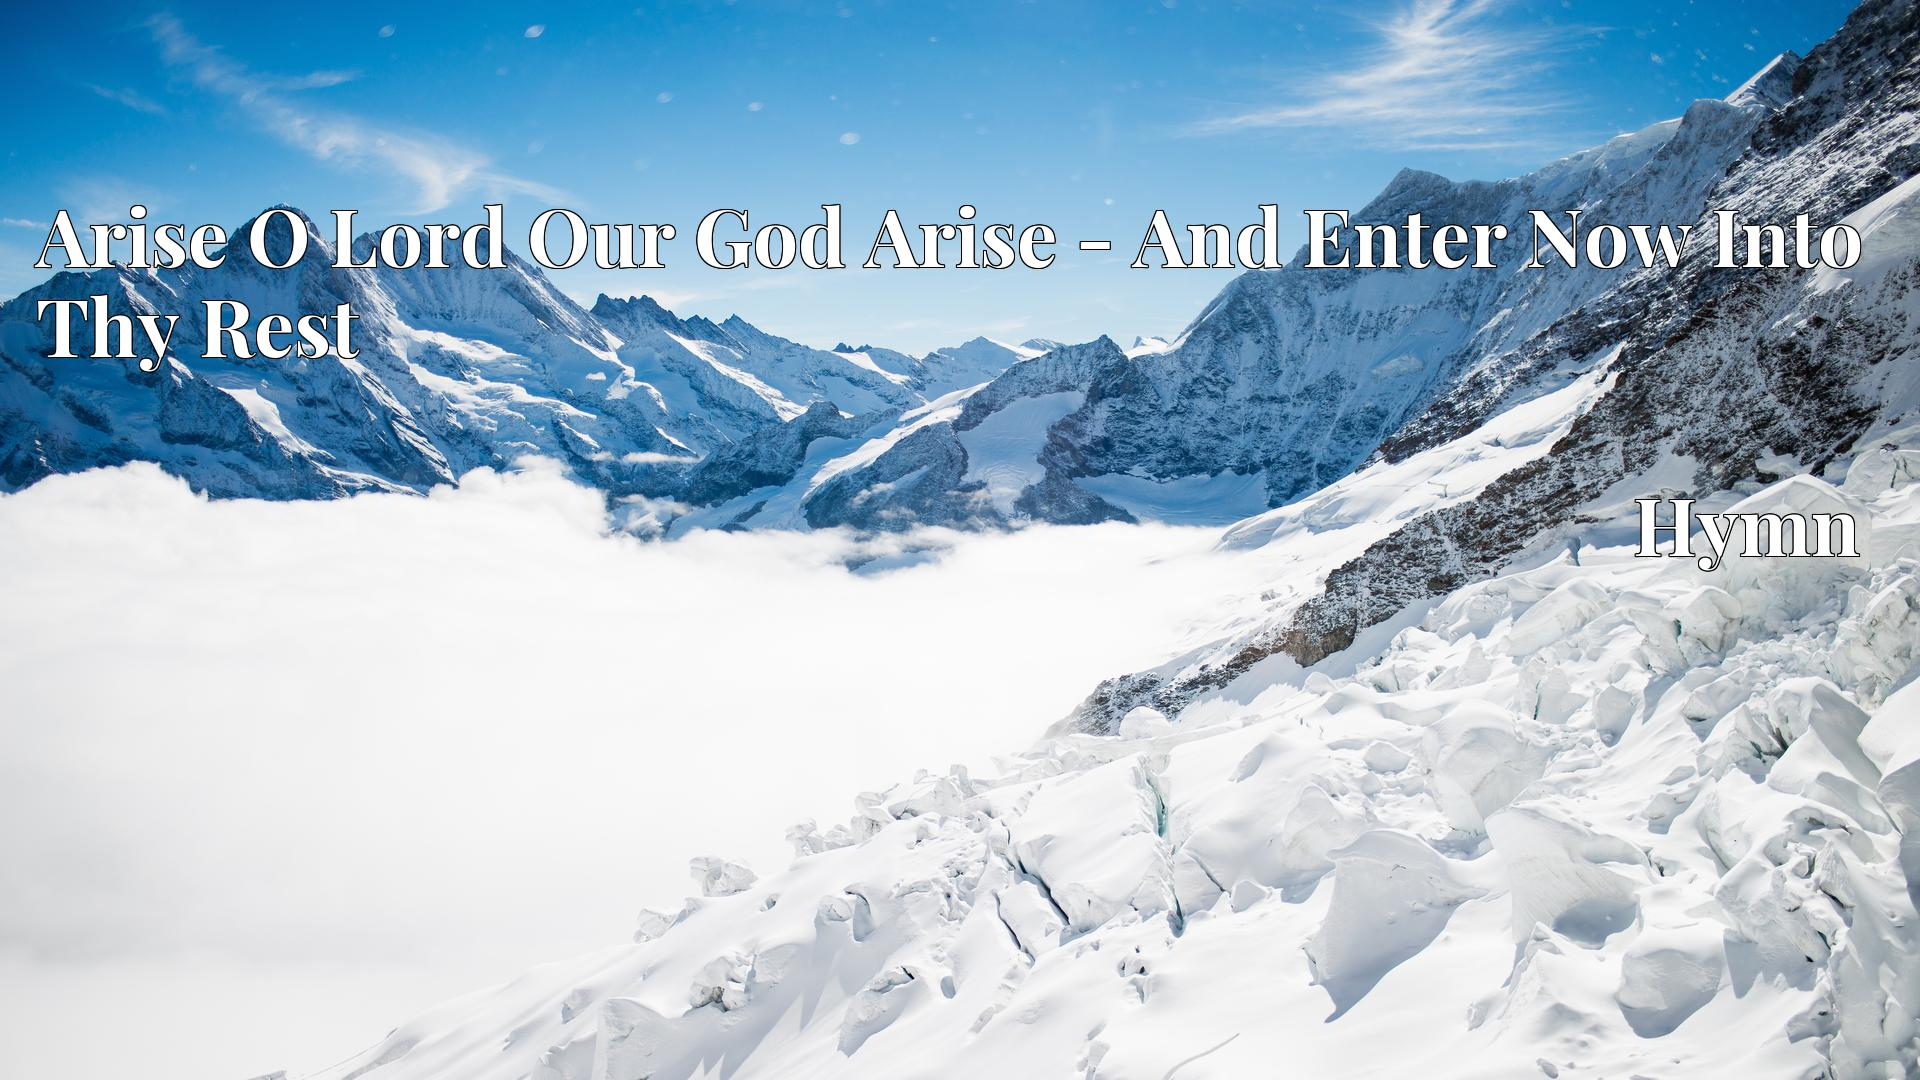 Arise O Lord Our God Arise - And Enter Now Into Thy Rest - Hymn